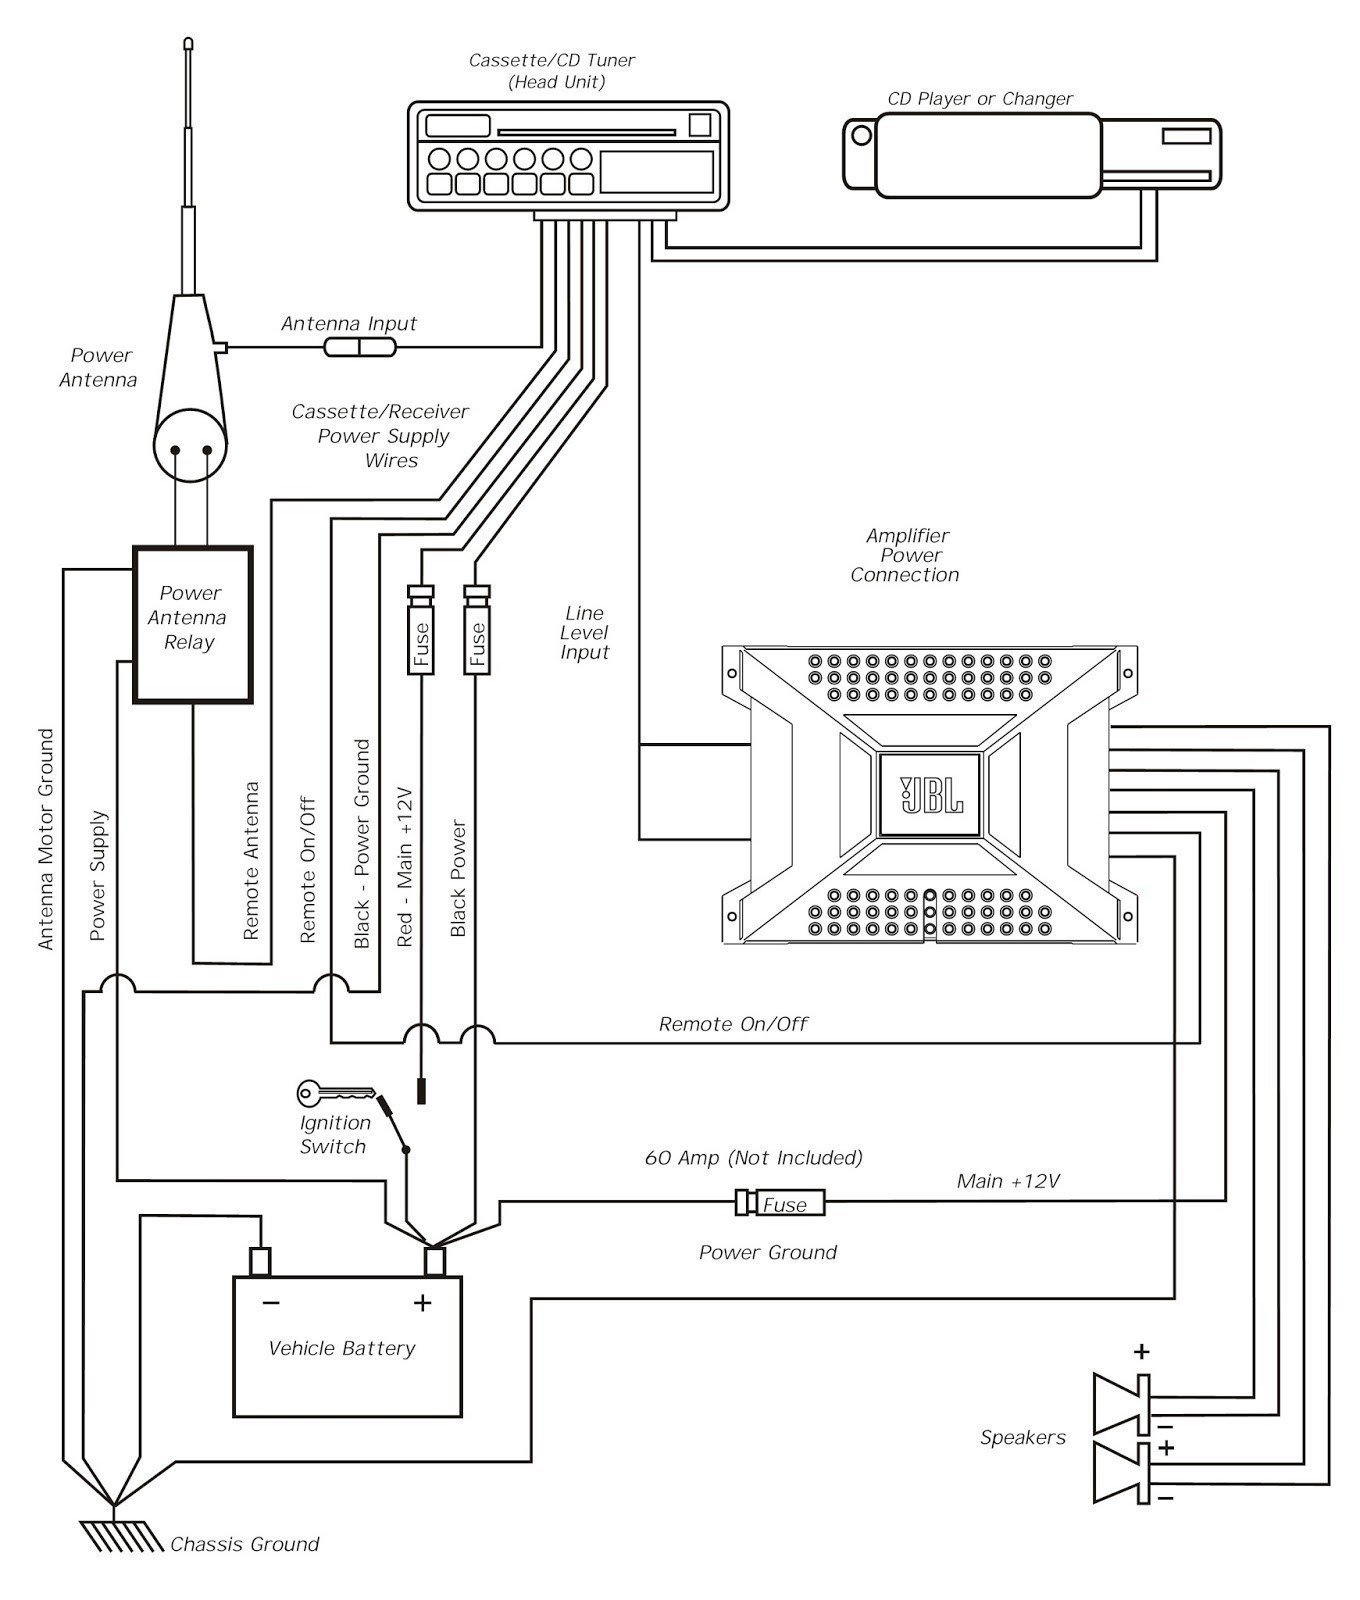 Xs650 Engine Diagram Wiring Diagram Xs650 Archives Elgrifo New Wiring Diagram for Of Xs650 Engine Diagram